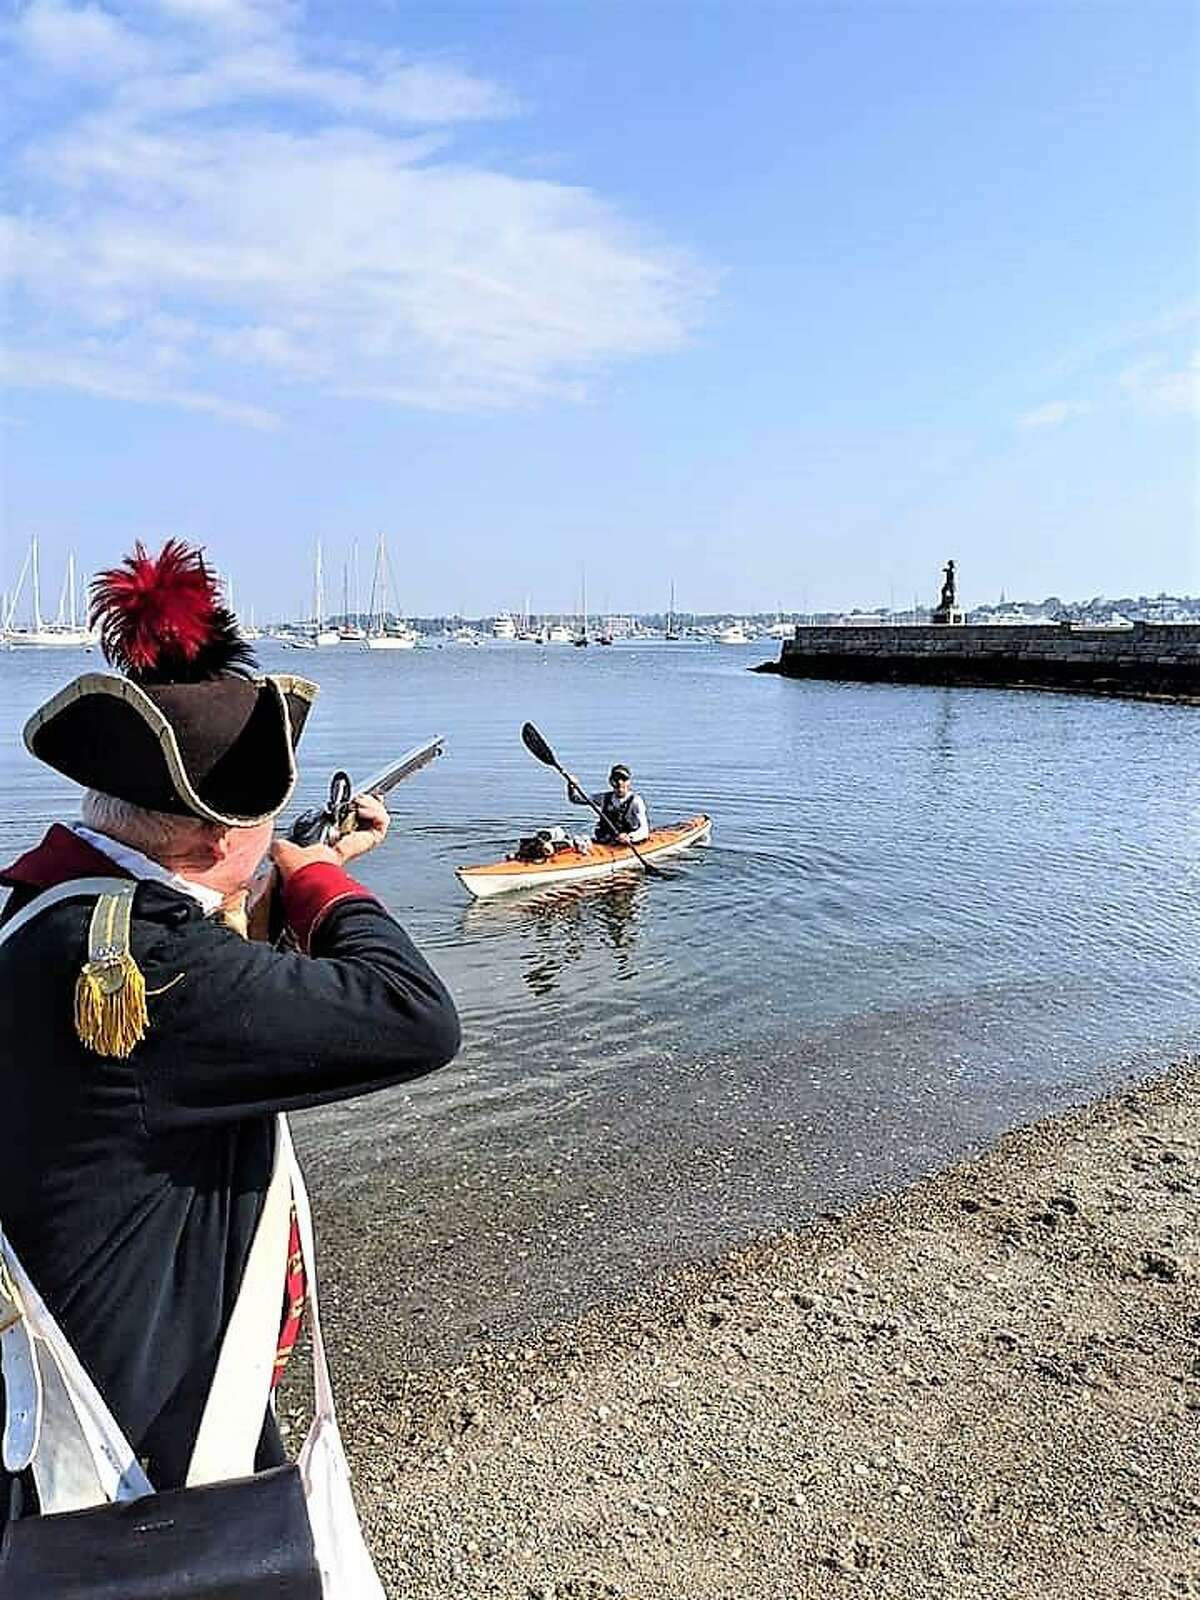 A reenactor at Newport, RI and Lilienthal in his kayak.